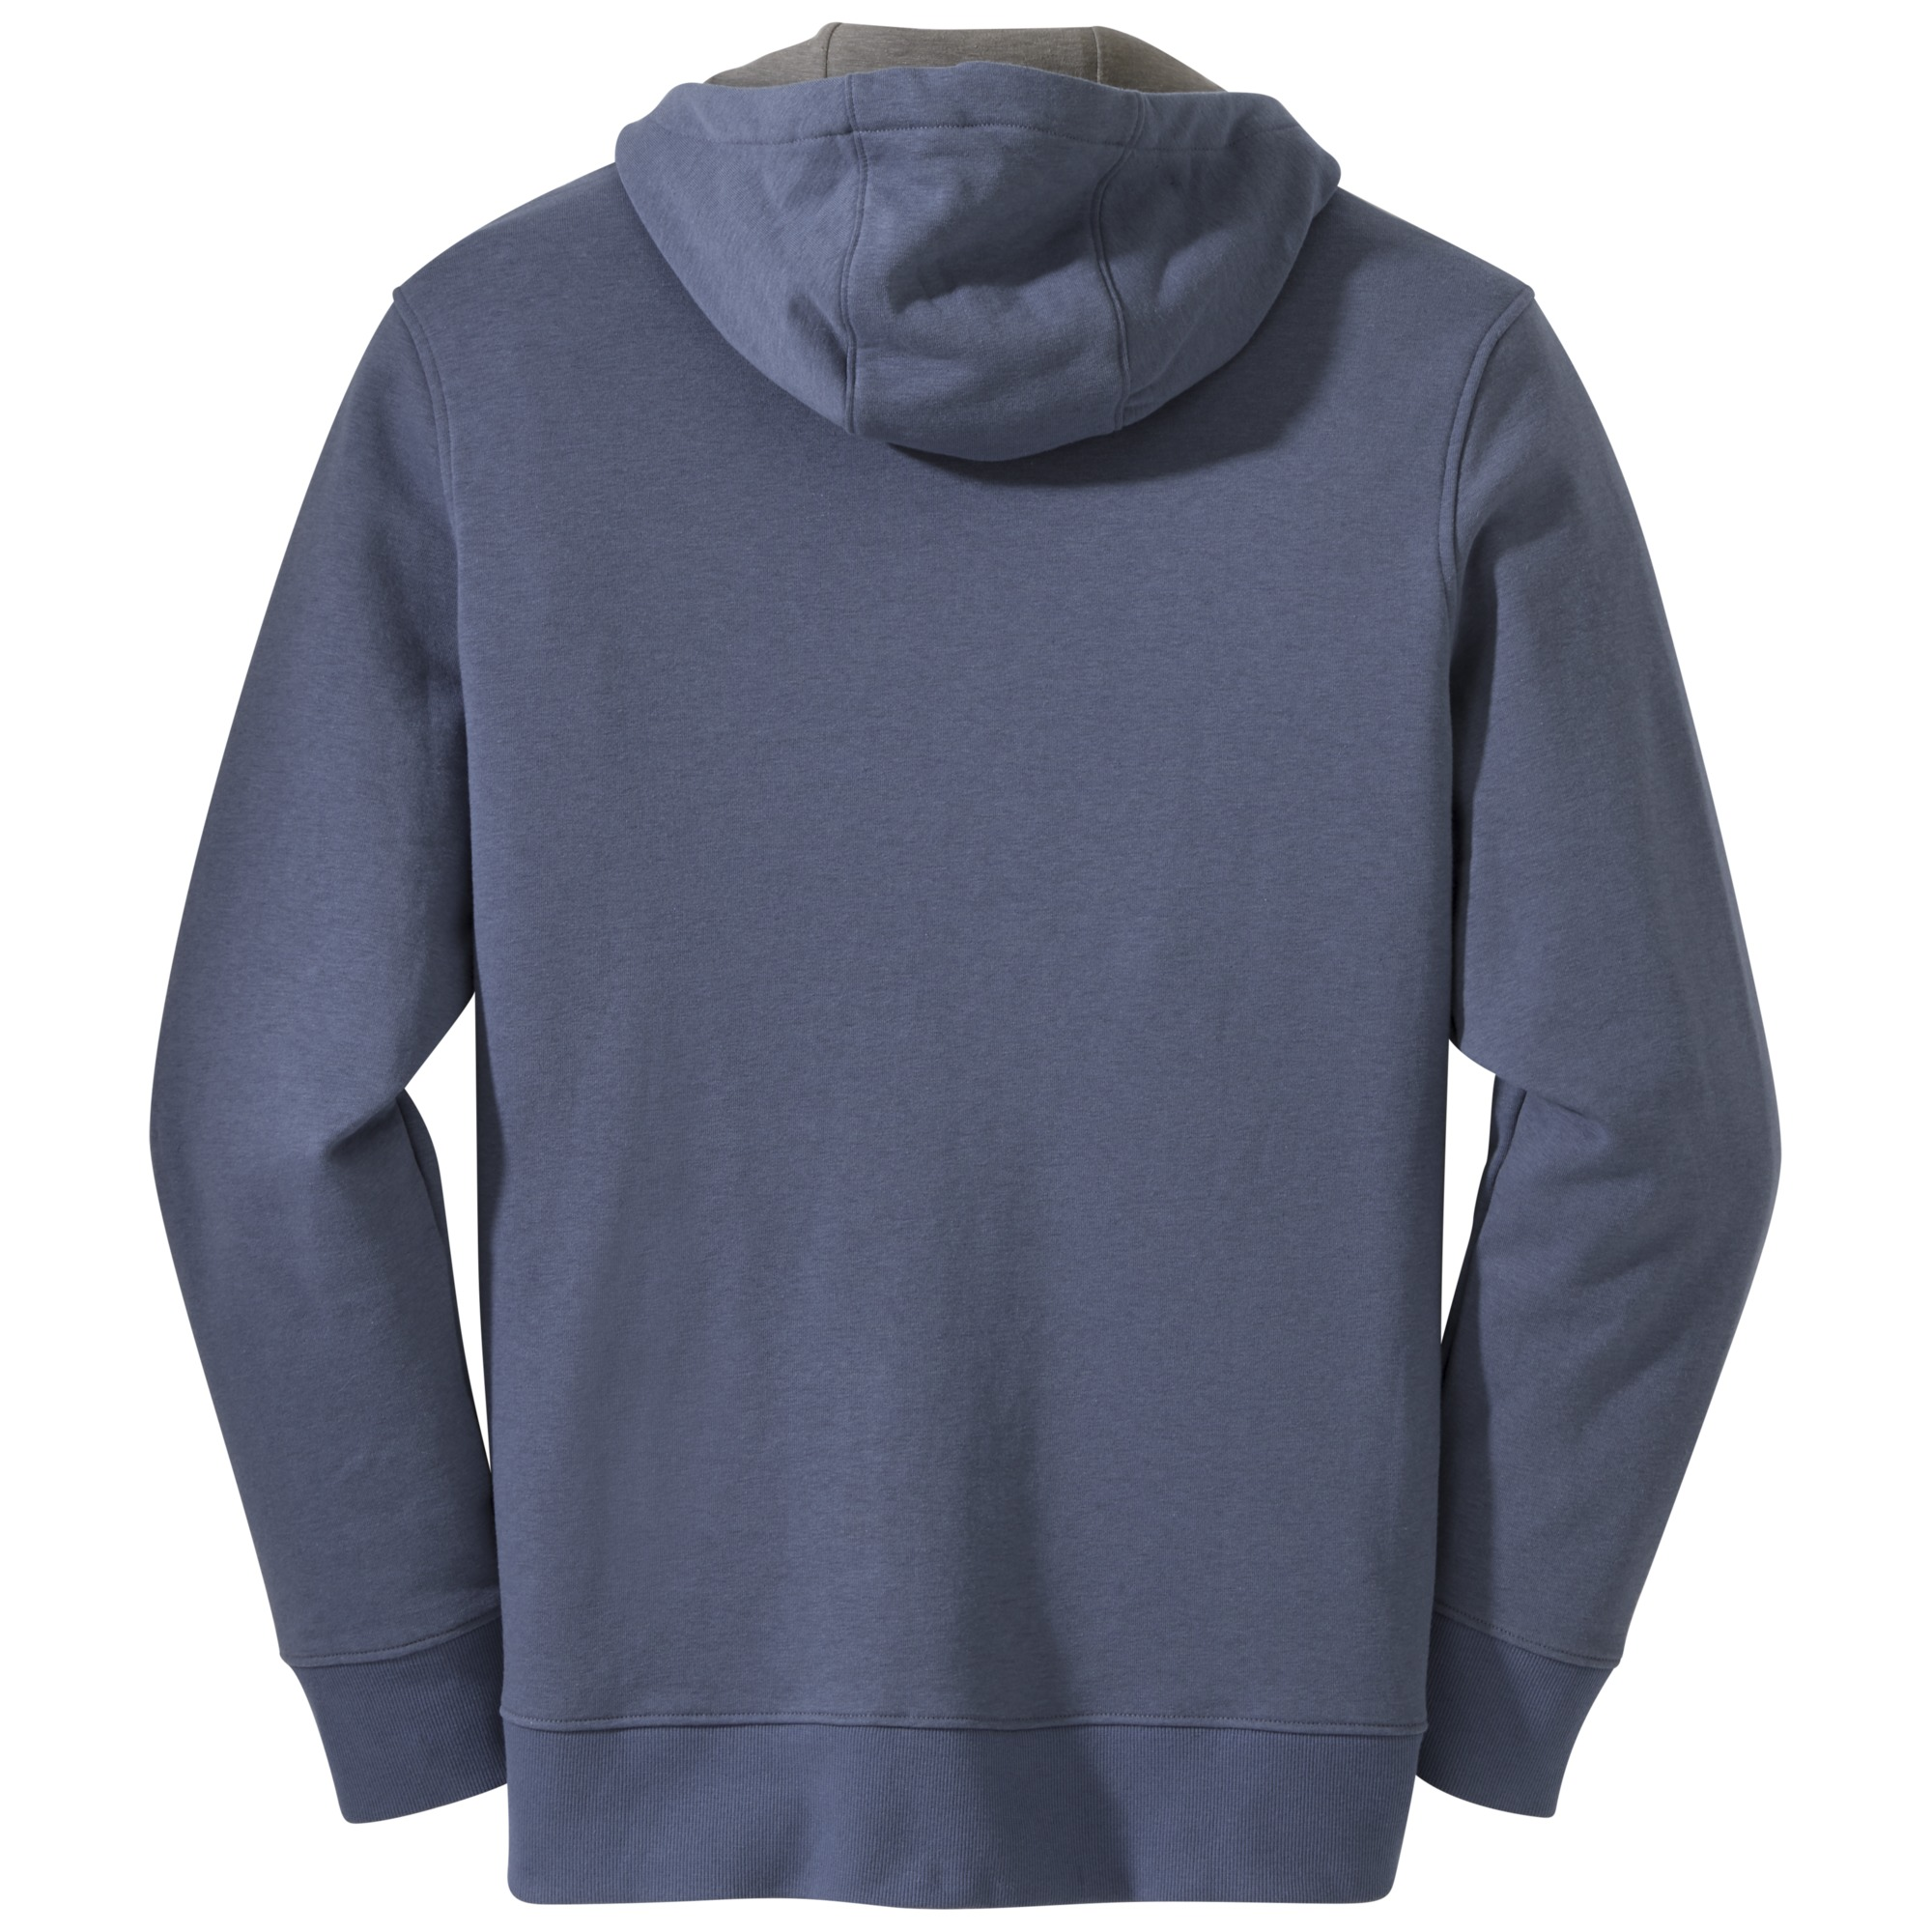 Aspiring Mens Hoody Black And Grey With Zips At Neck Incorrectly Sized Hoodies & Sweatshirts Clothing, Shoes & Accessories